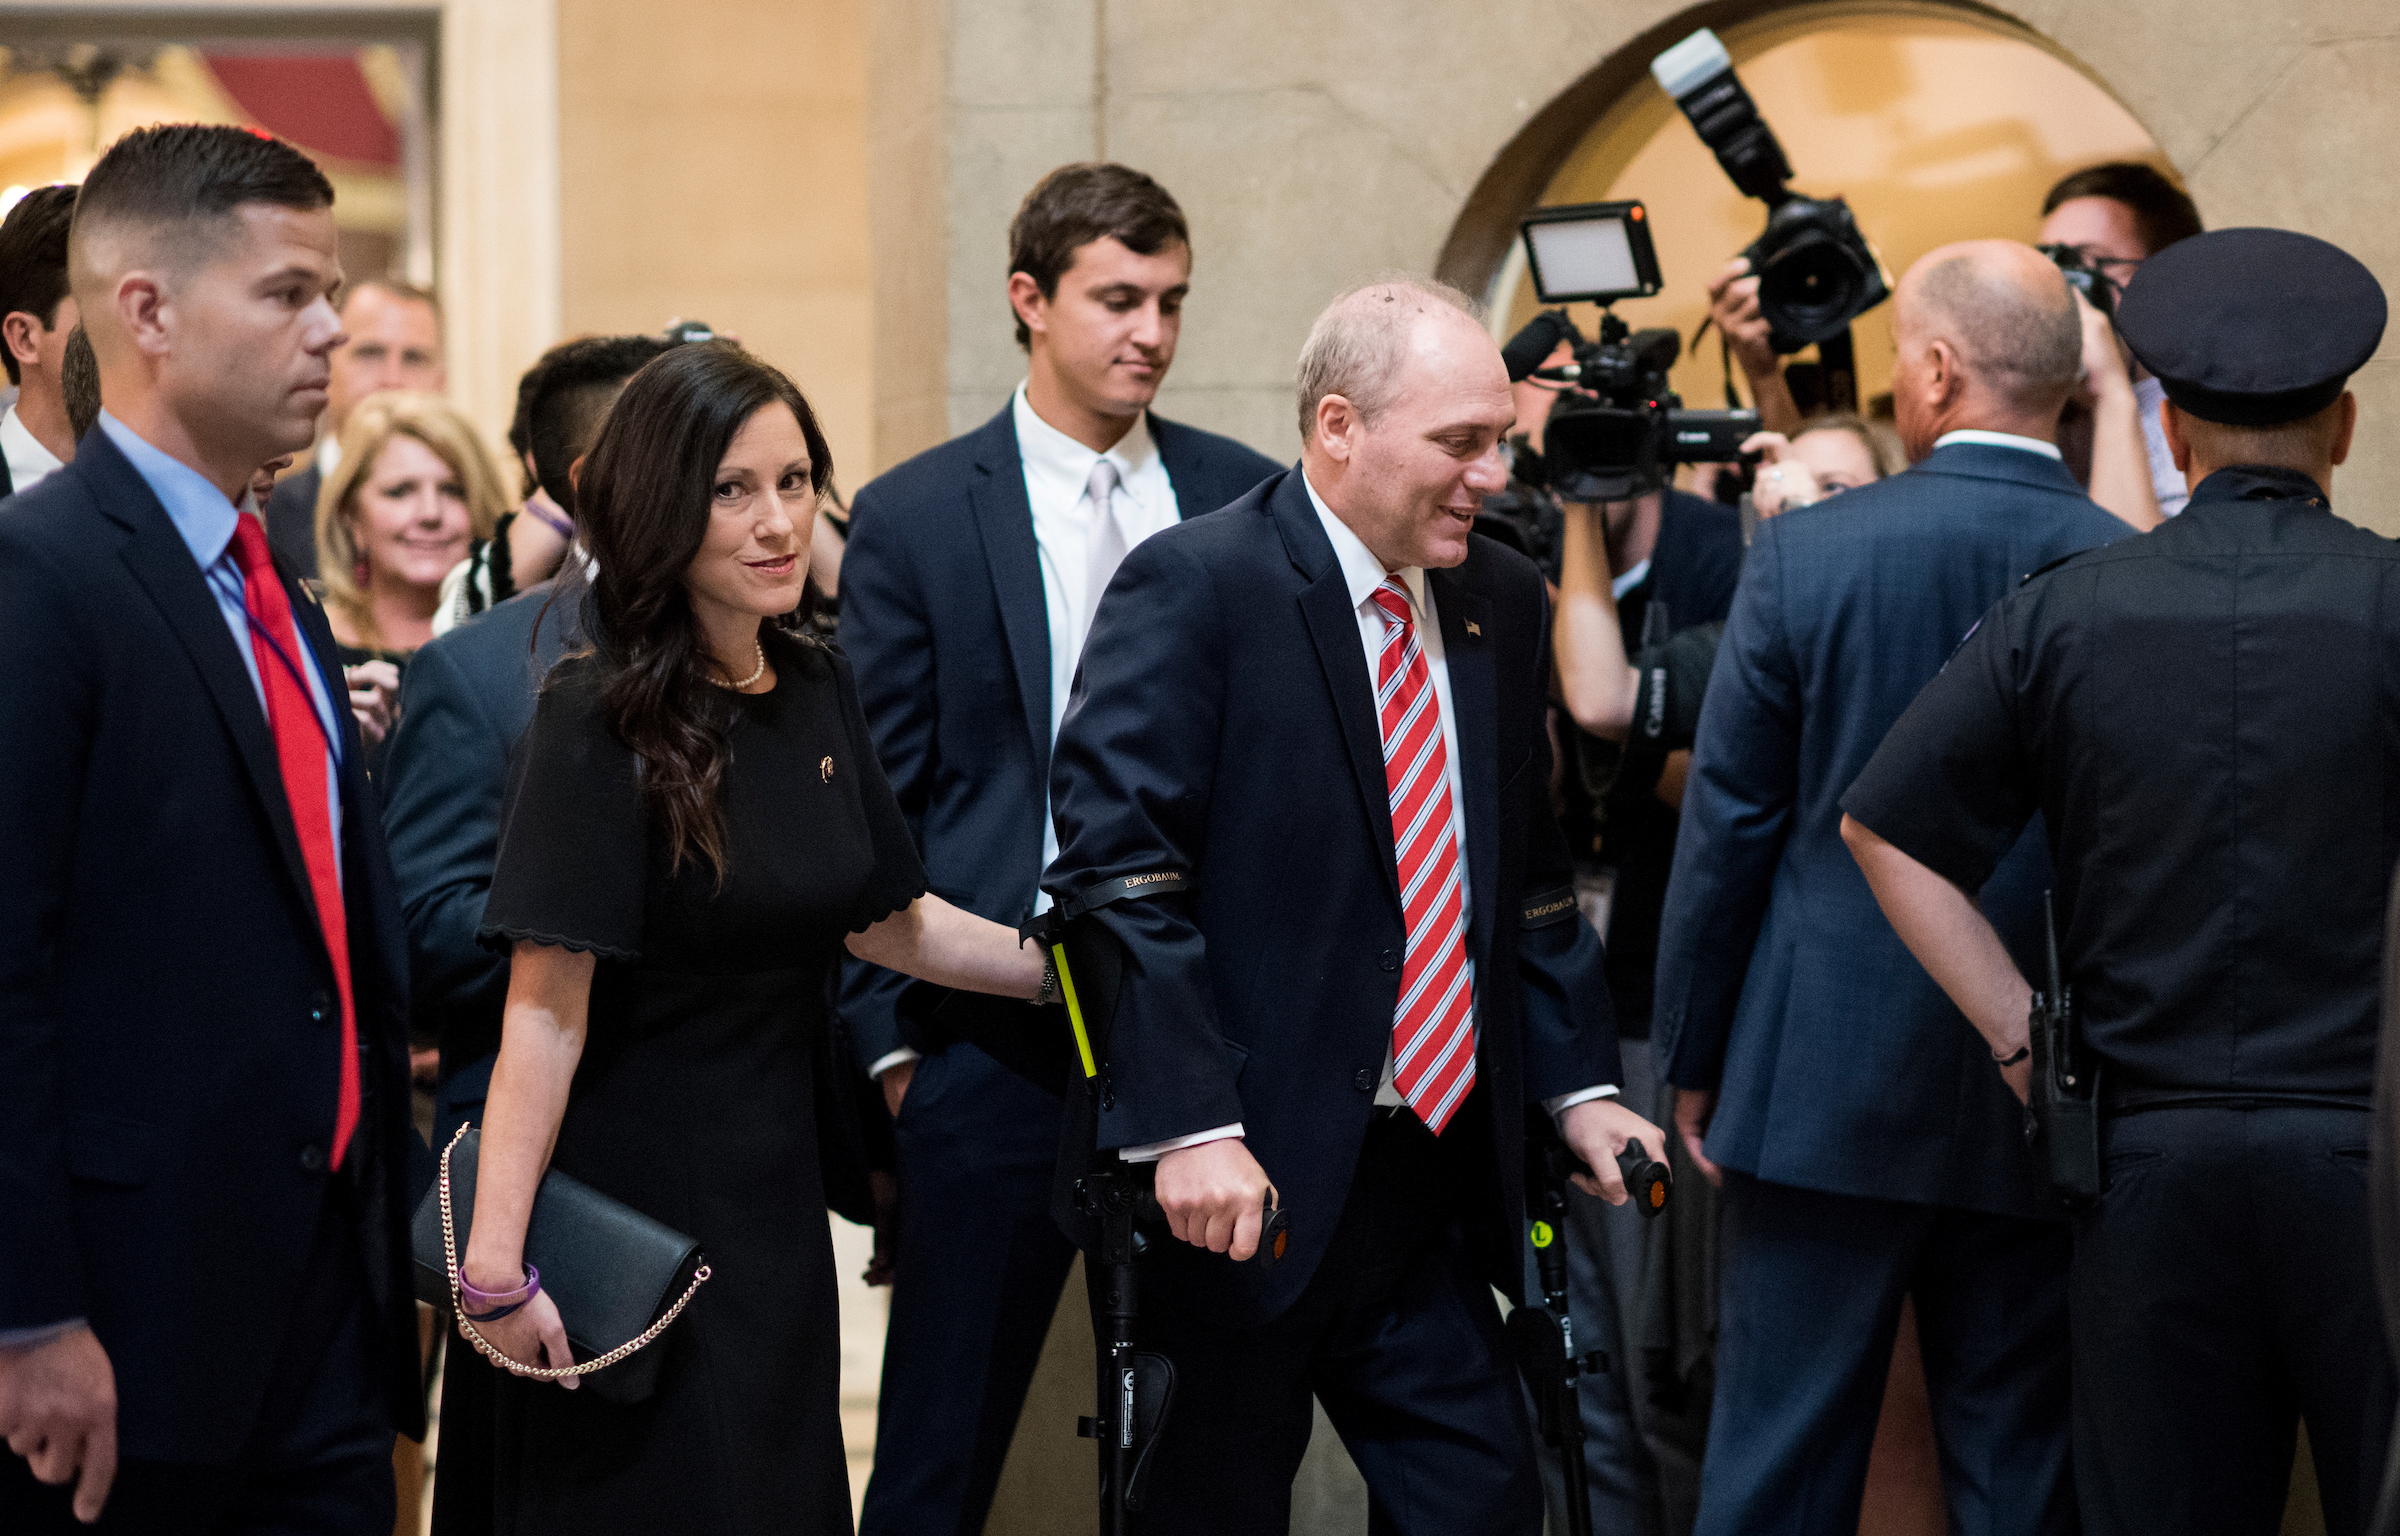 UNITED STATES - SEPTEMBER 28: House Majority Whip Steve Scalise, R-La., walks with his wife Jennifer from the House chamber to his office in the Capitol on his first day back in Congress on Thursday, Sept. 28, 2017. Scales was shot during baseball practice for the Congressional Baseball Game in June. (Photo By Bill Clark/CQ Roll Call)